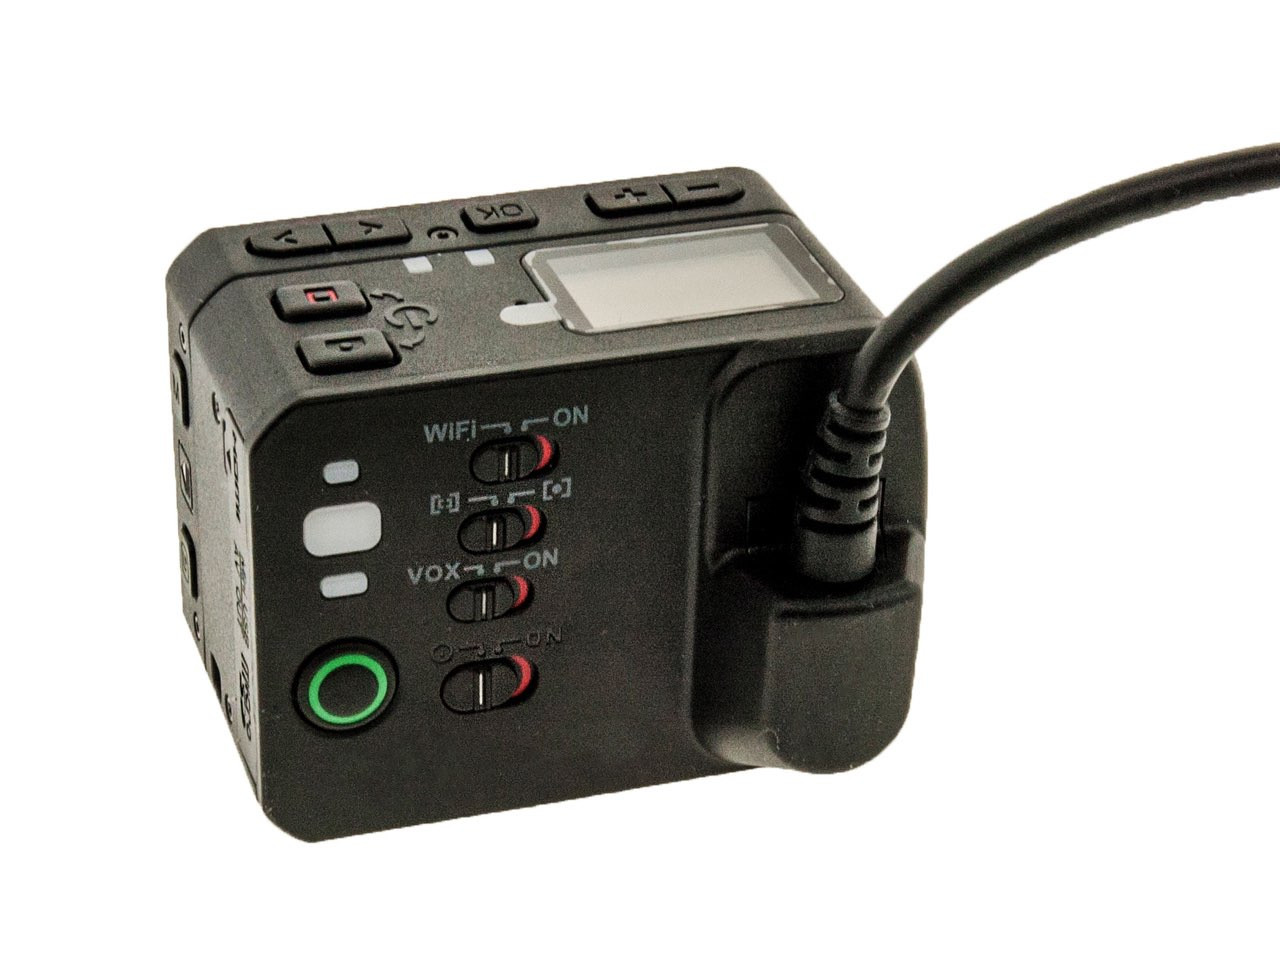 Police-Grade Camera with Built-in WiFi and Remote Storage